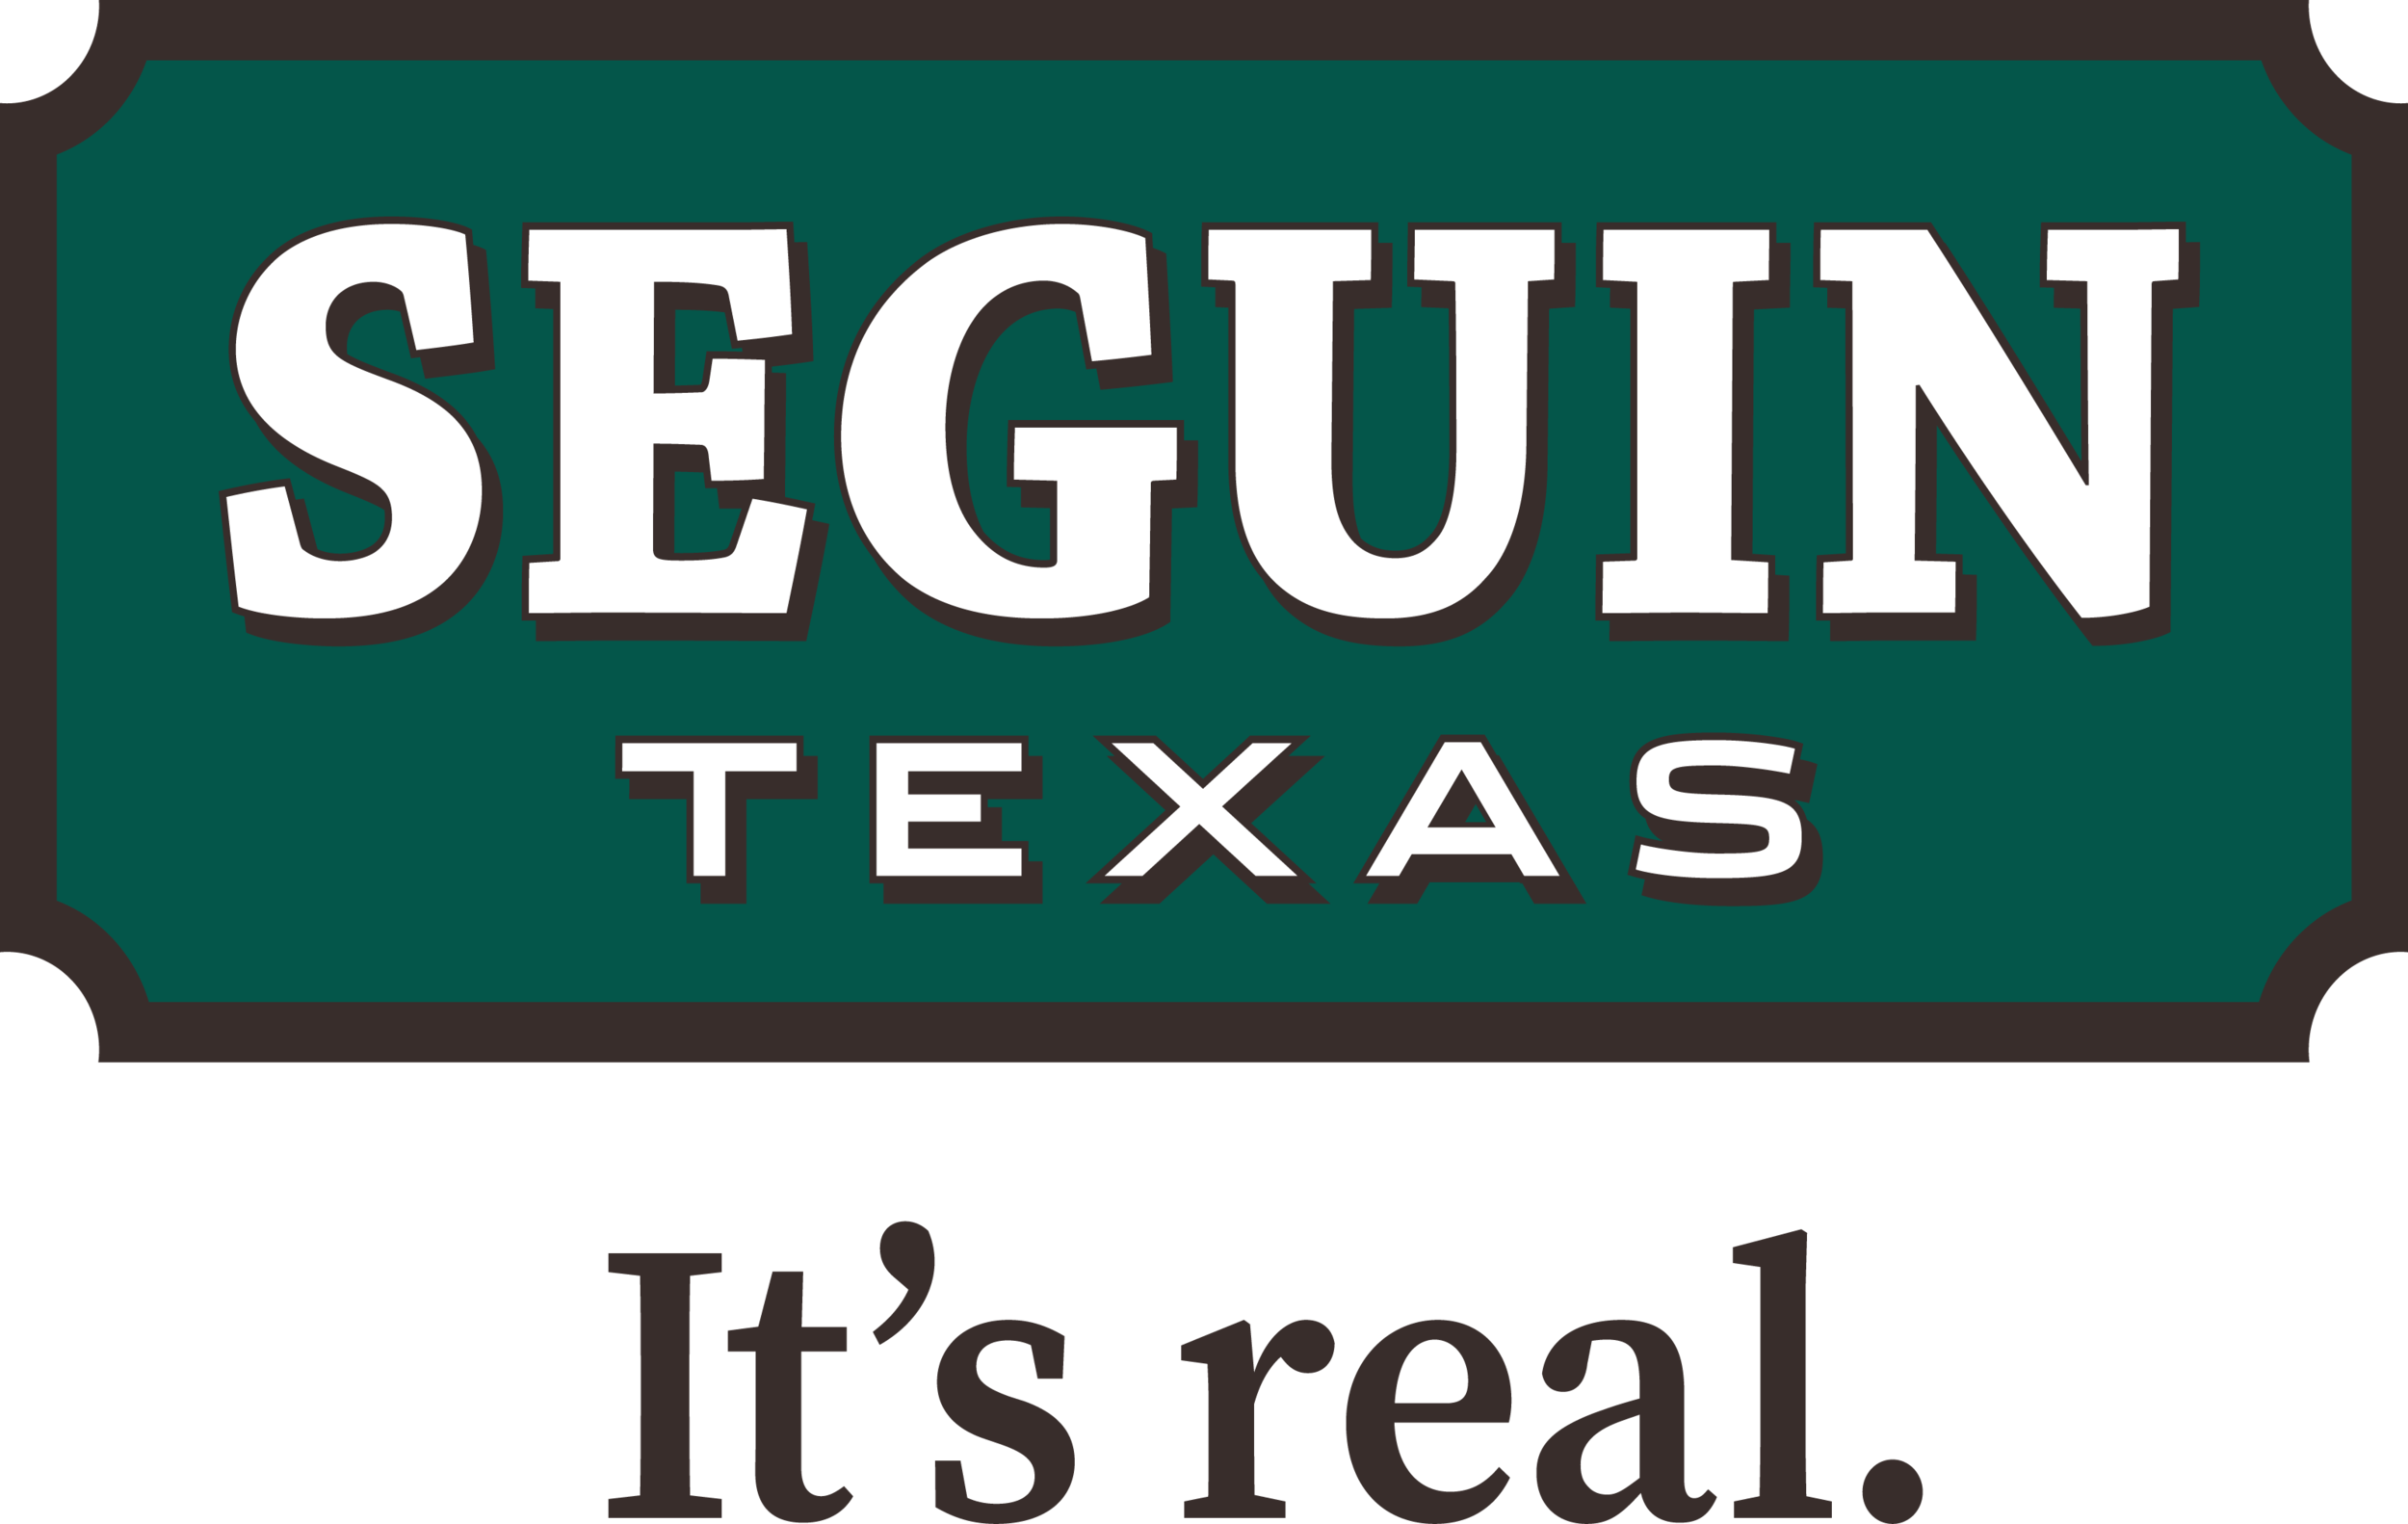 Seguin Logo and Tag Brown Border        3193x2021.png